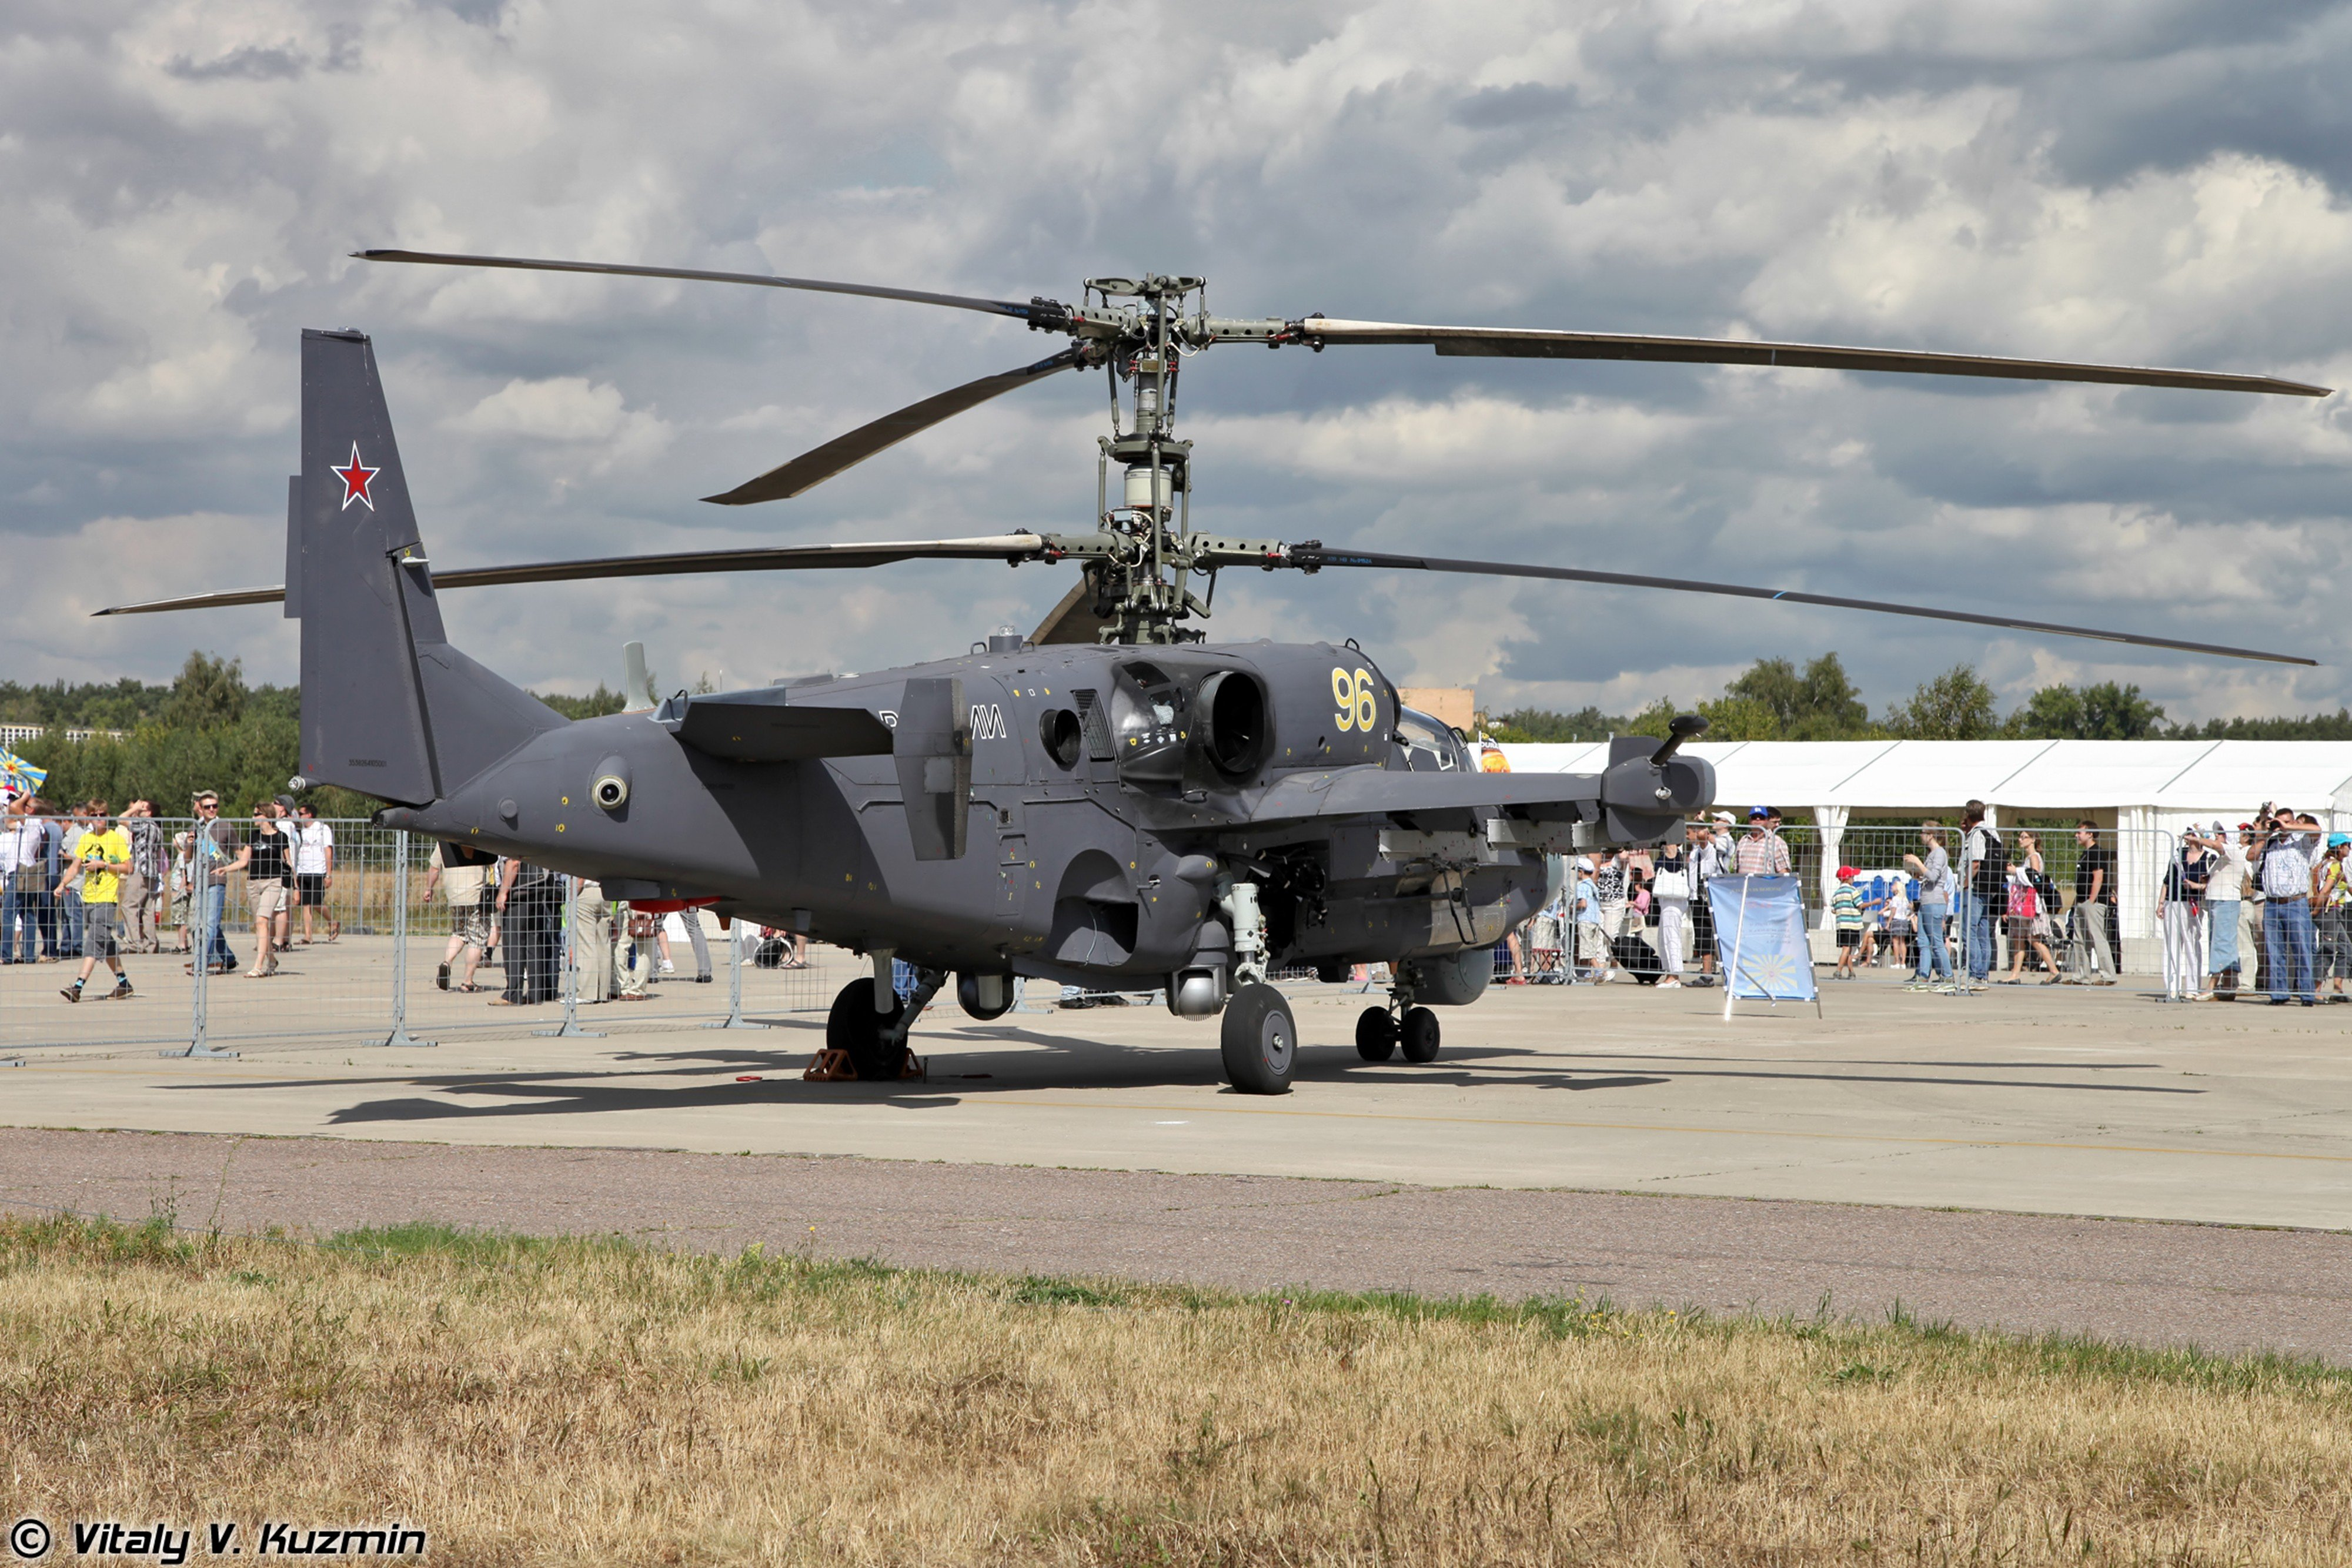 russian helicopter mil-mi attack aircraft Russia war red star